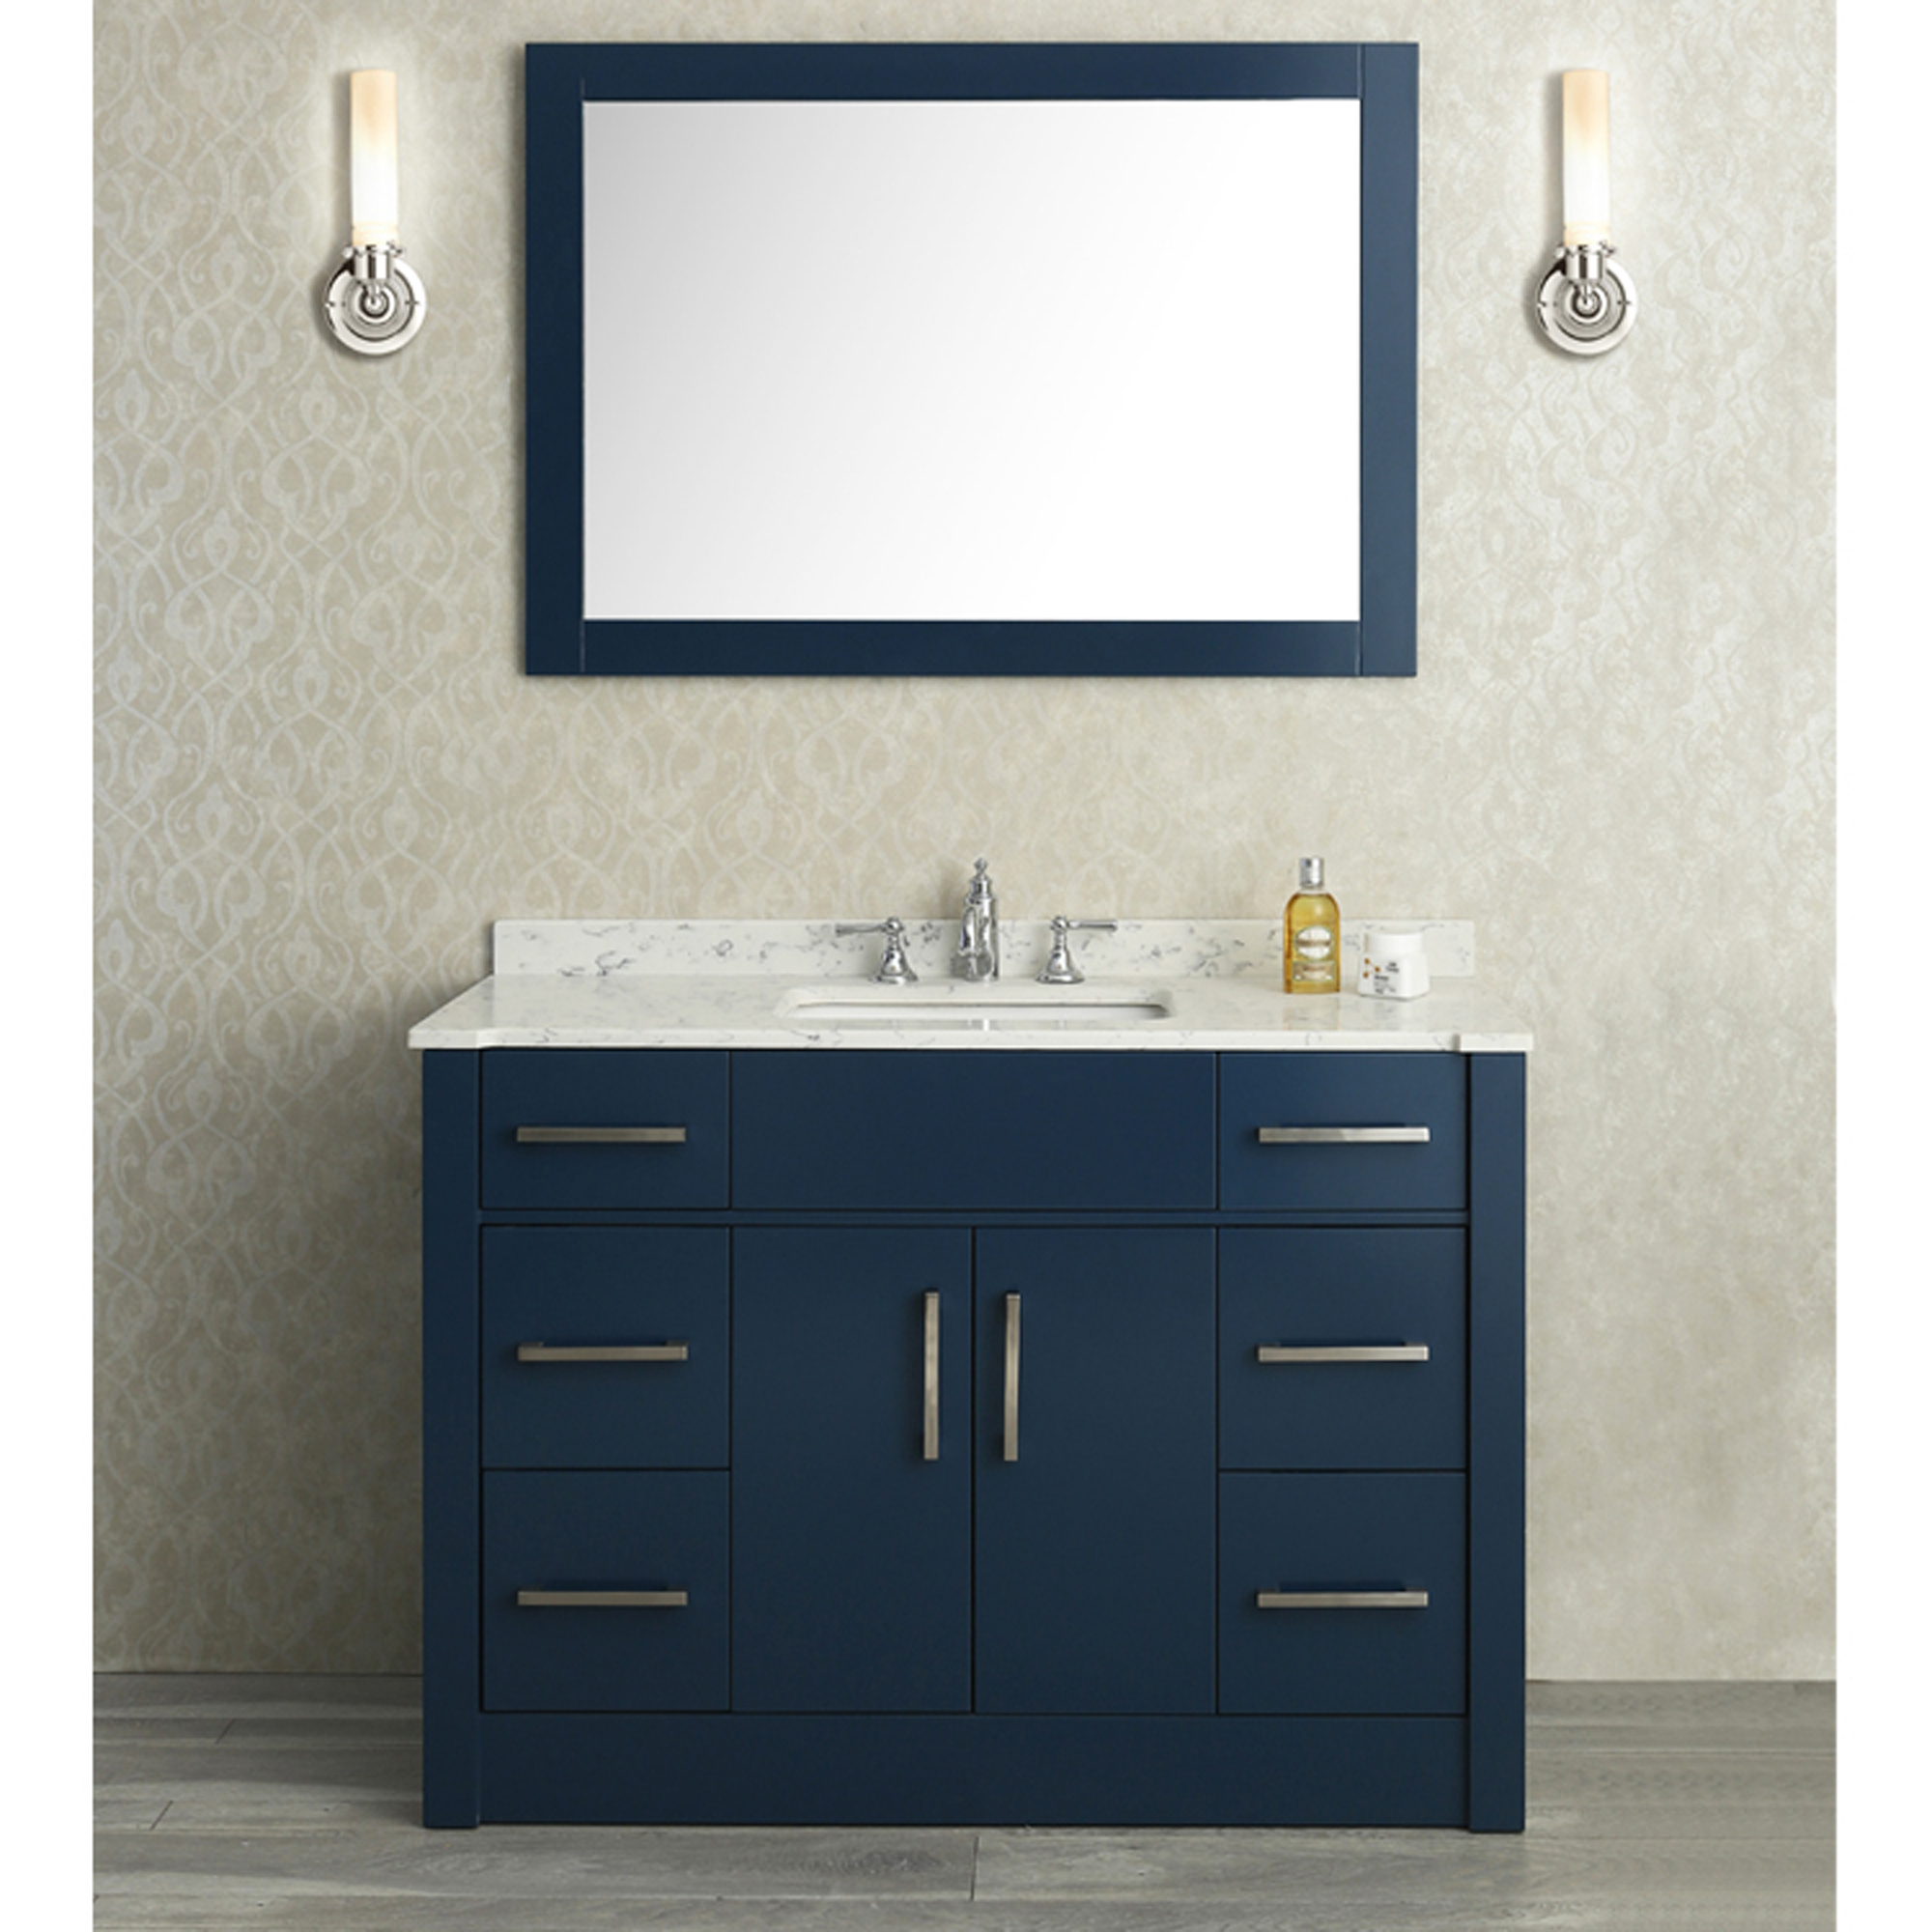 "Inspirational Ace 48"" Single Sink Bathroom Vanity Set Midnight Blue Finish pertaining to Blue Bathroom Vanity Cabinet"